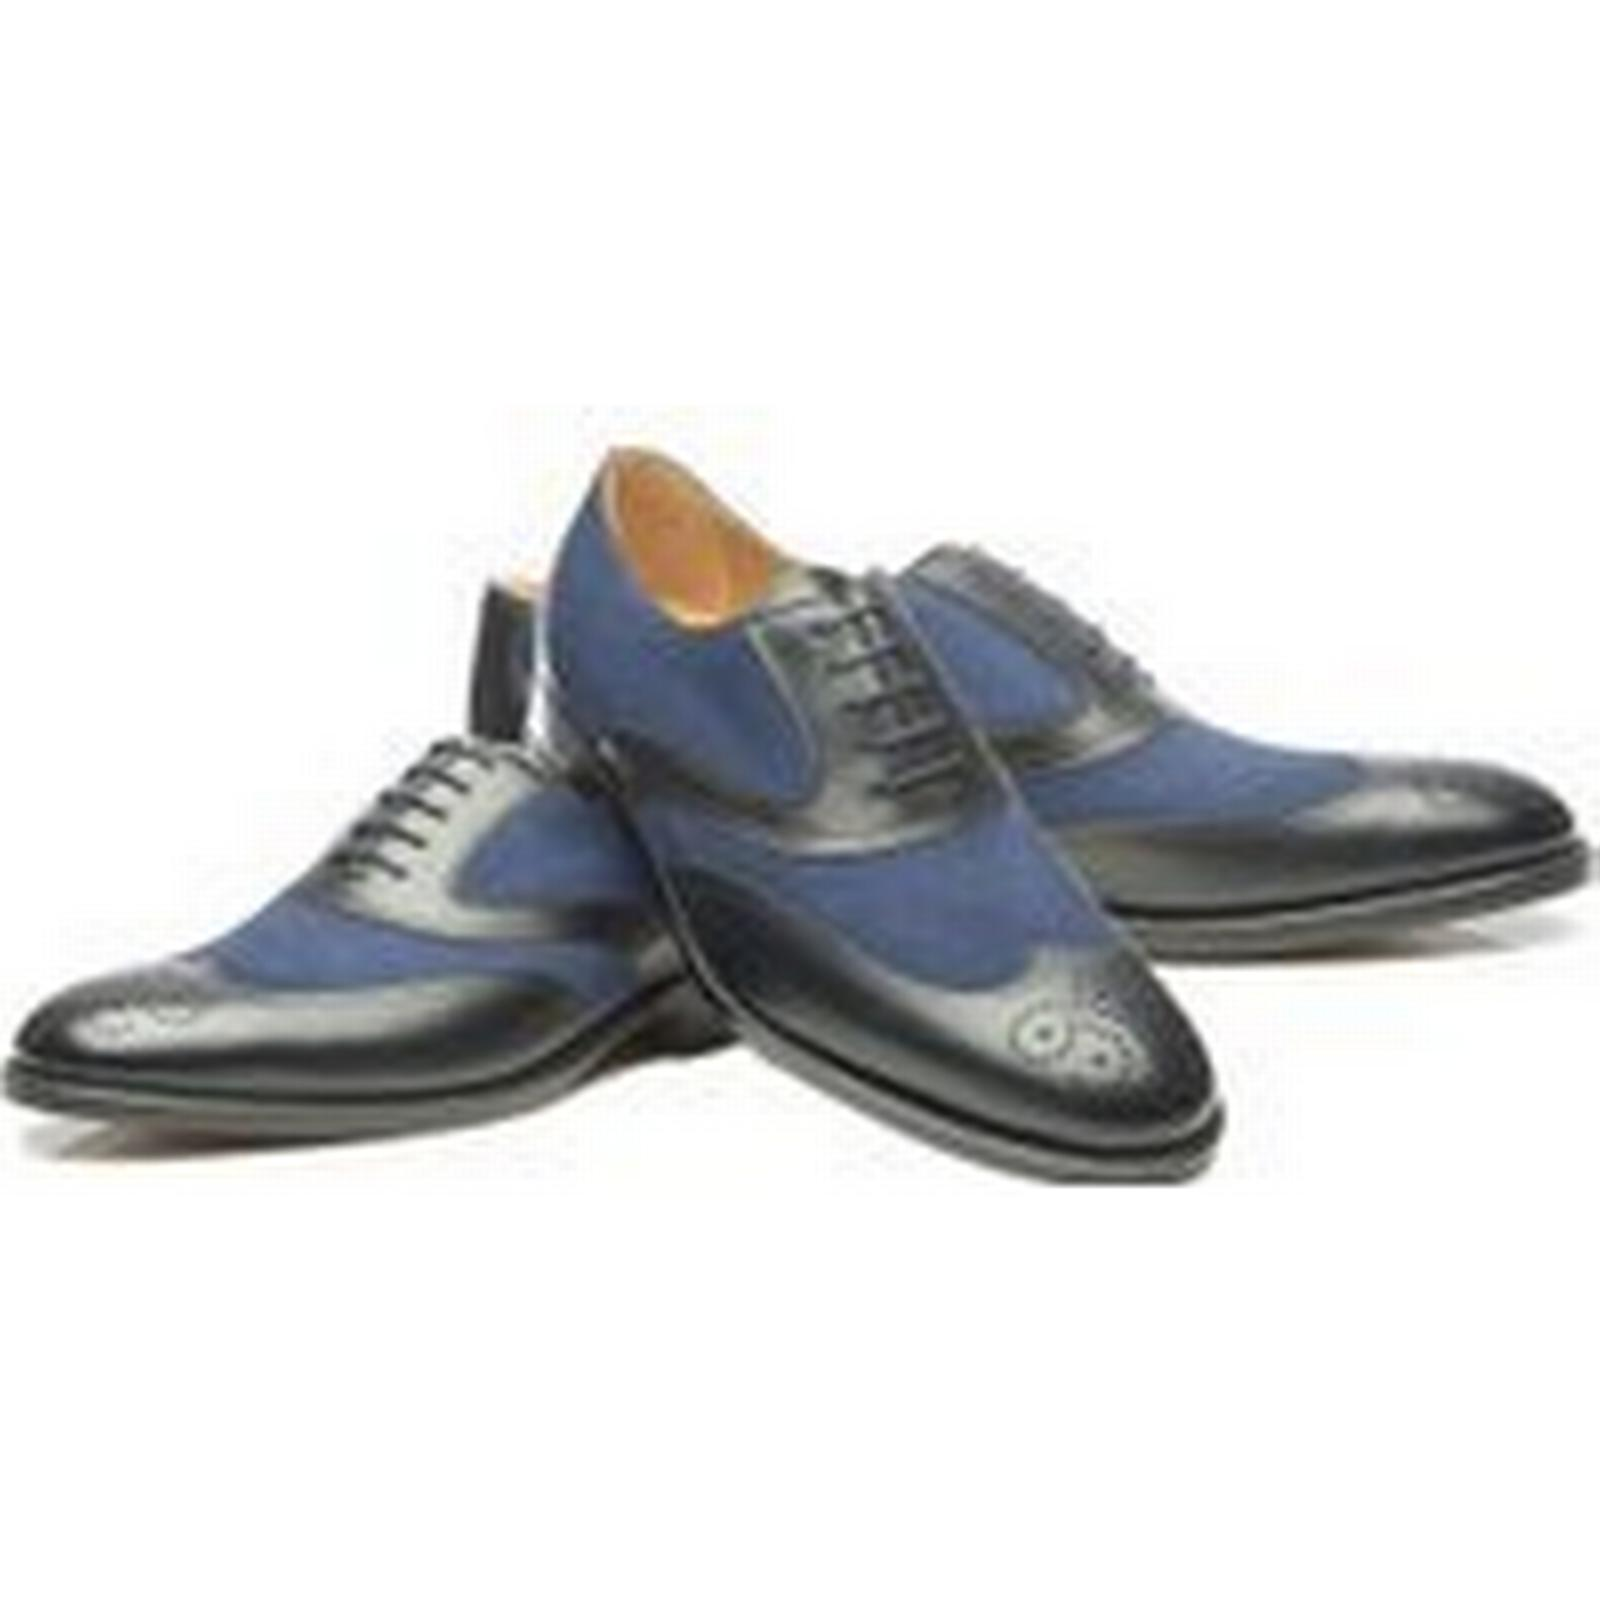 Bonanza (Global) Handmade Black Wing Tip shoes Men Two Two Men Tone Blue Brogue Formal Leather Suede Shoe fe3916